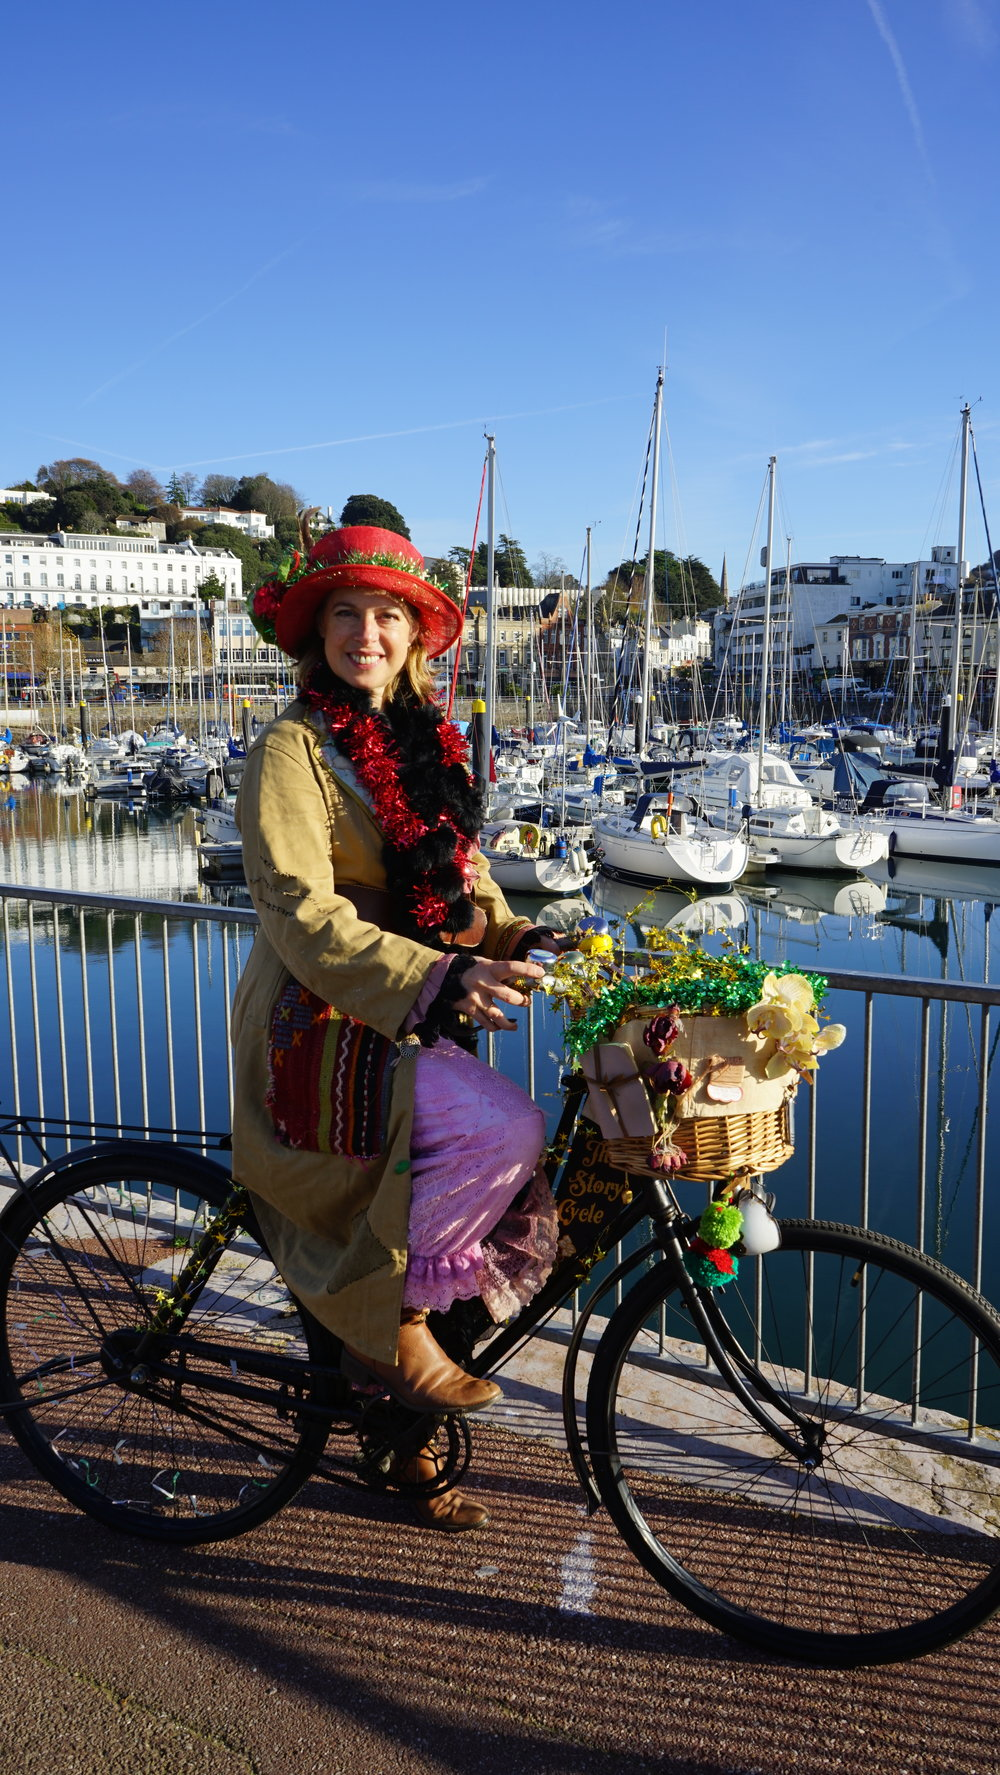 Isabella Necessity Story Bicycle, The Shorely, Torbay Culture